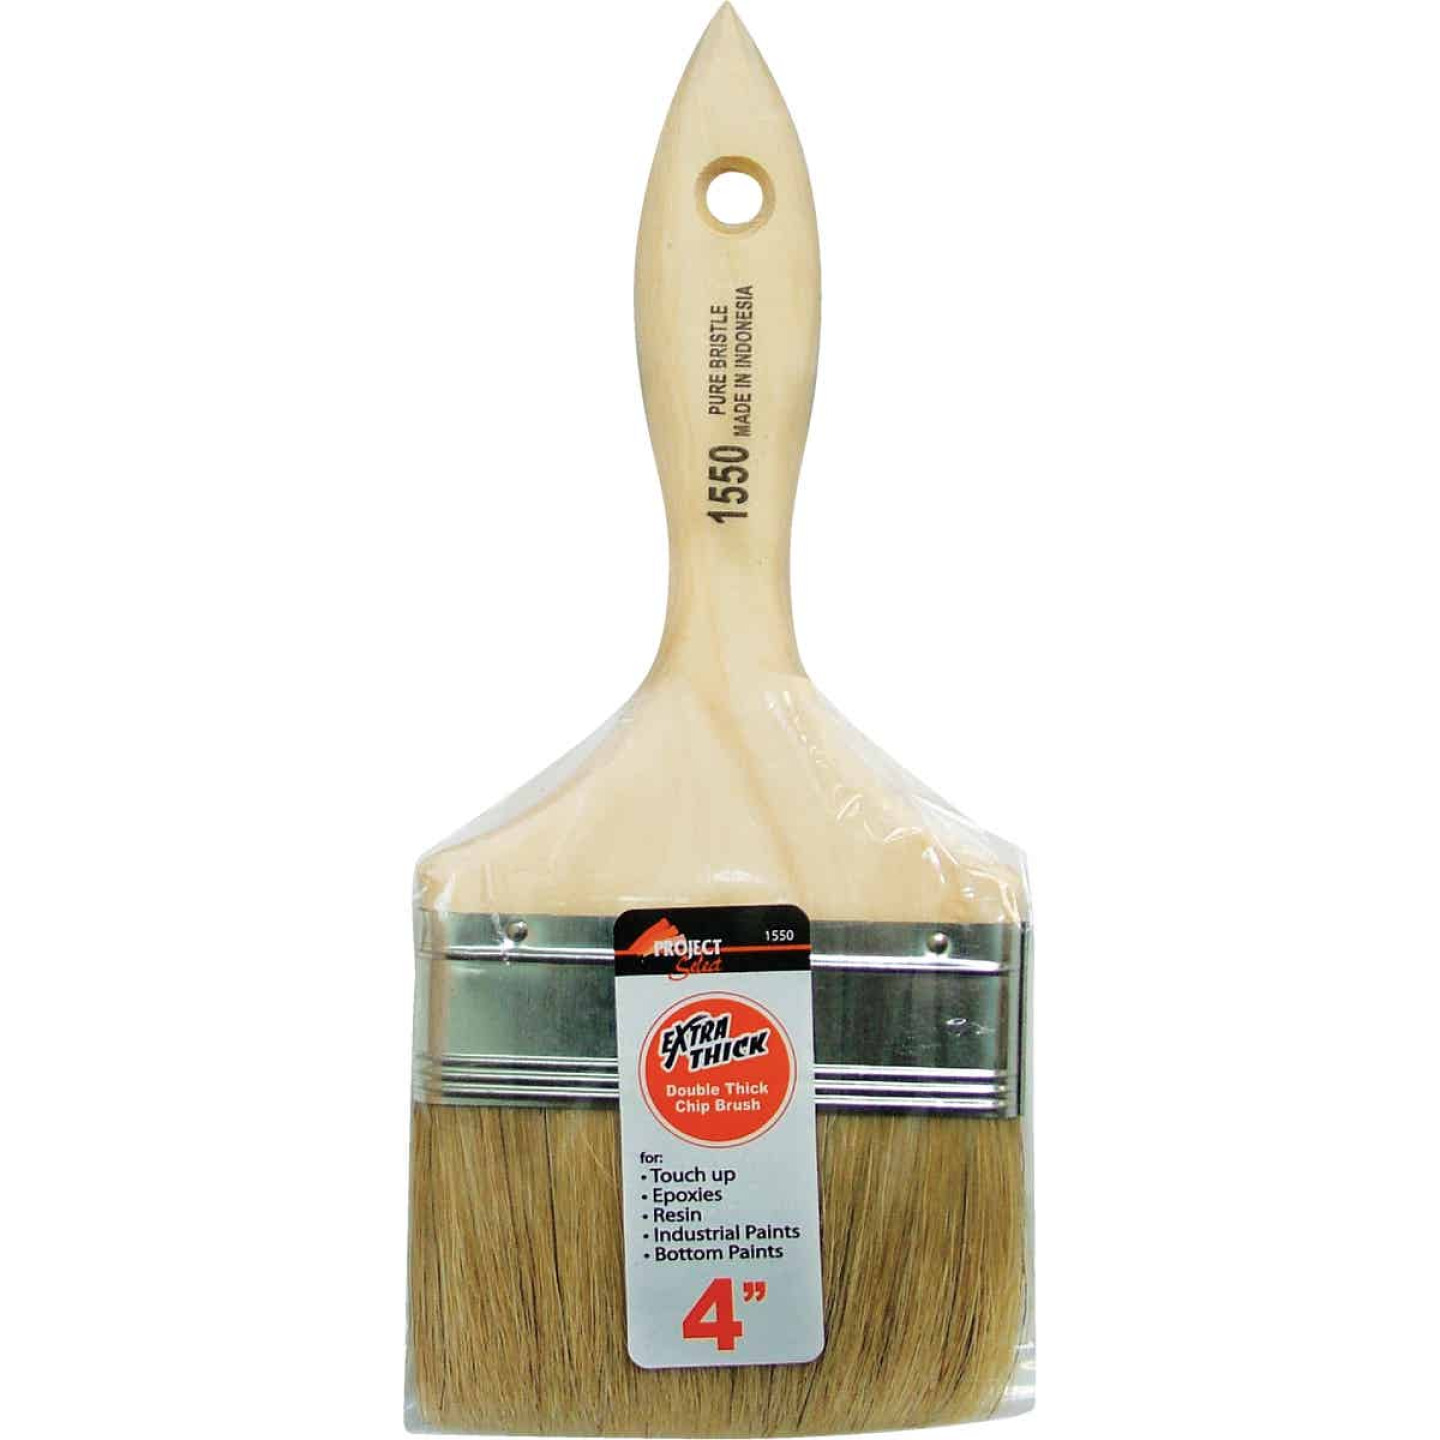 Project Select 4 In. Double Thick Chip Paint Brush Image 1